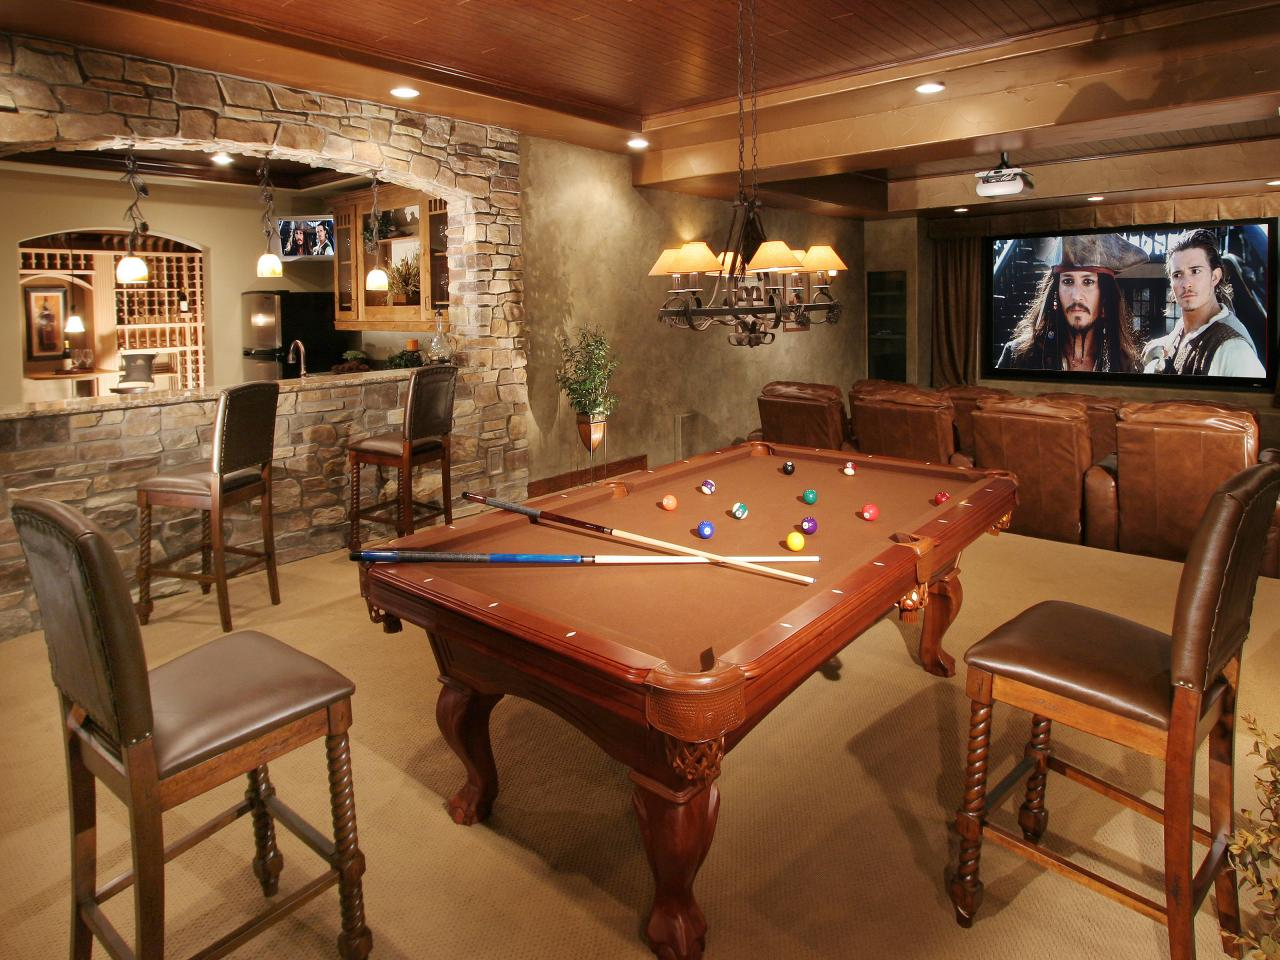 Finished Basement Remodel - Project in Colts Neck, NJ